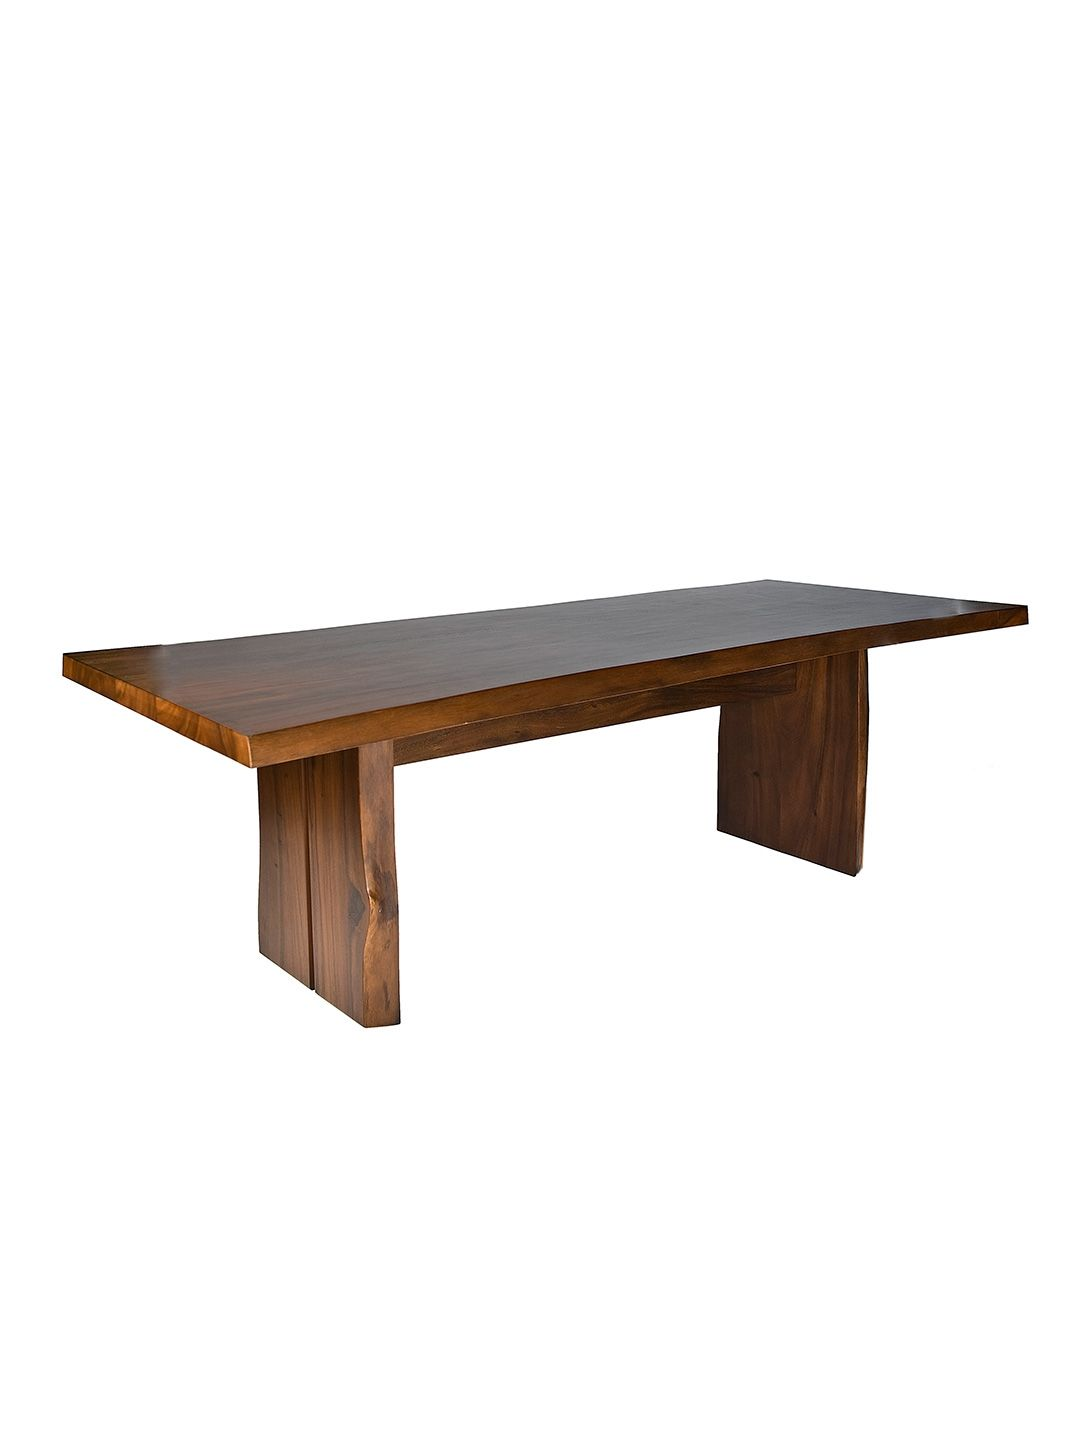 somnia furniture. live dining table by somnia line of lexington at gilt furniture